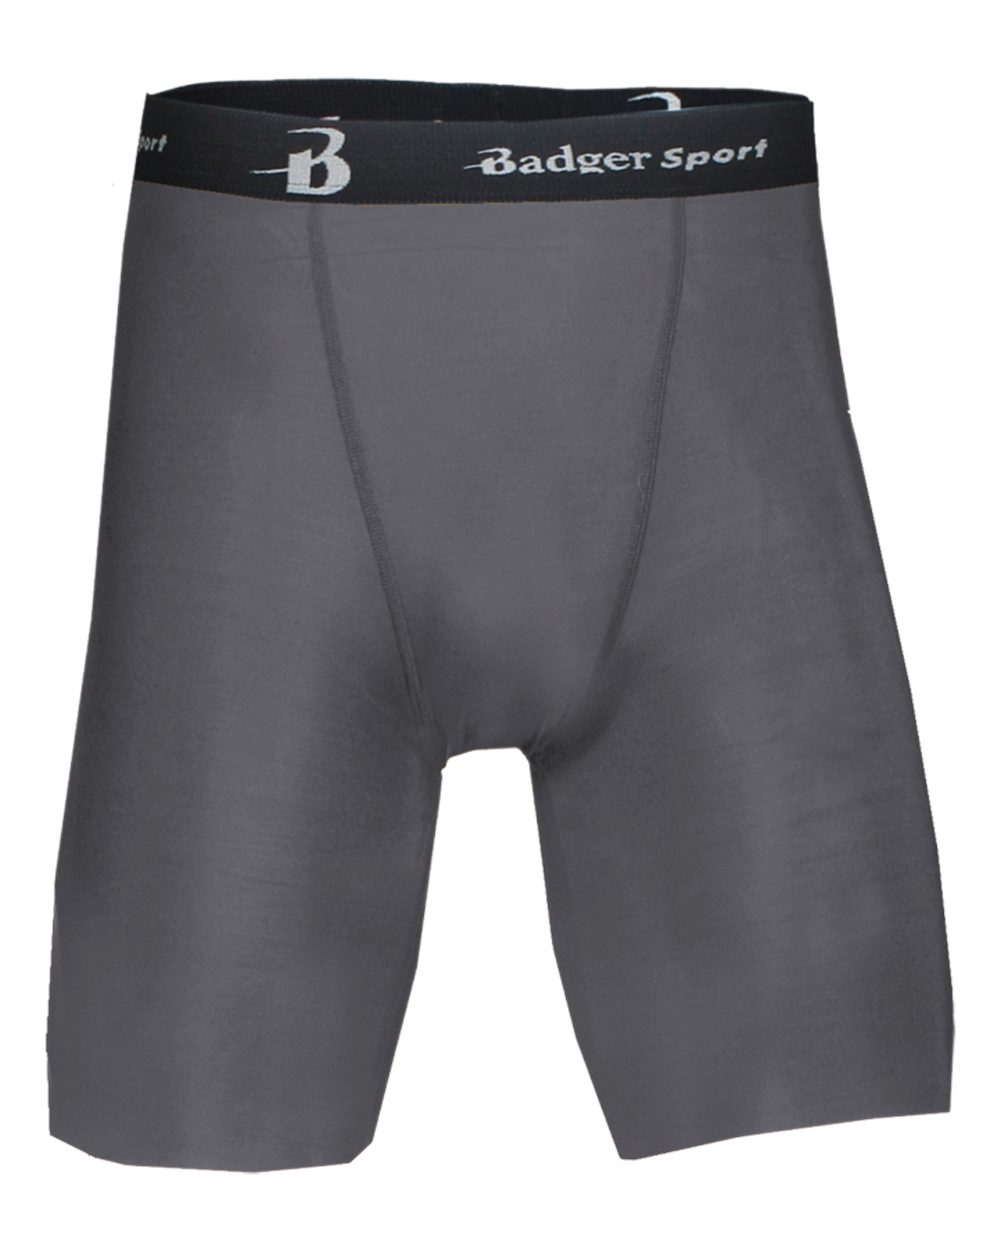 Badger Compression Short 10in